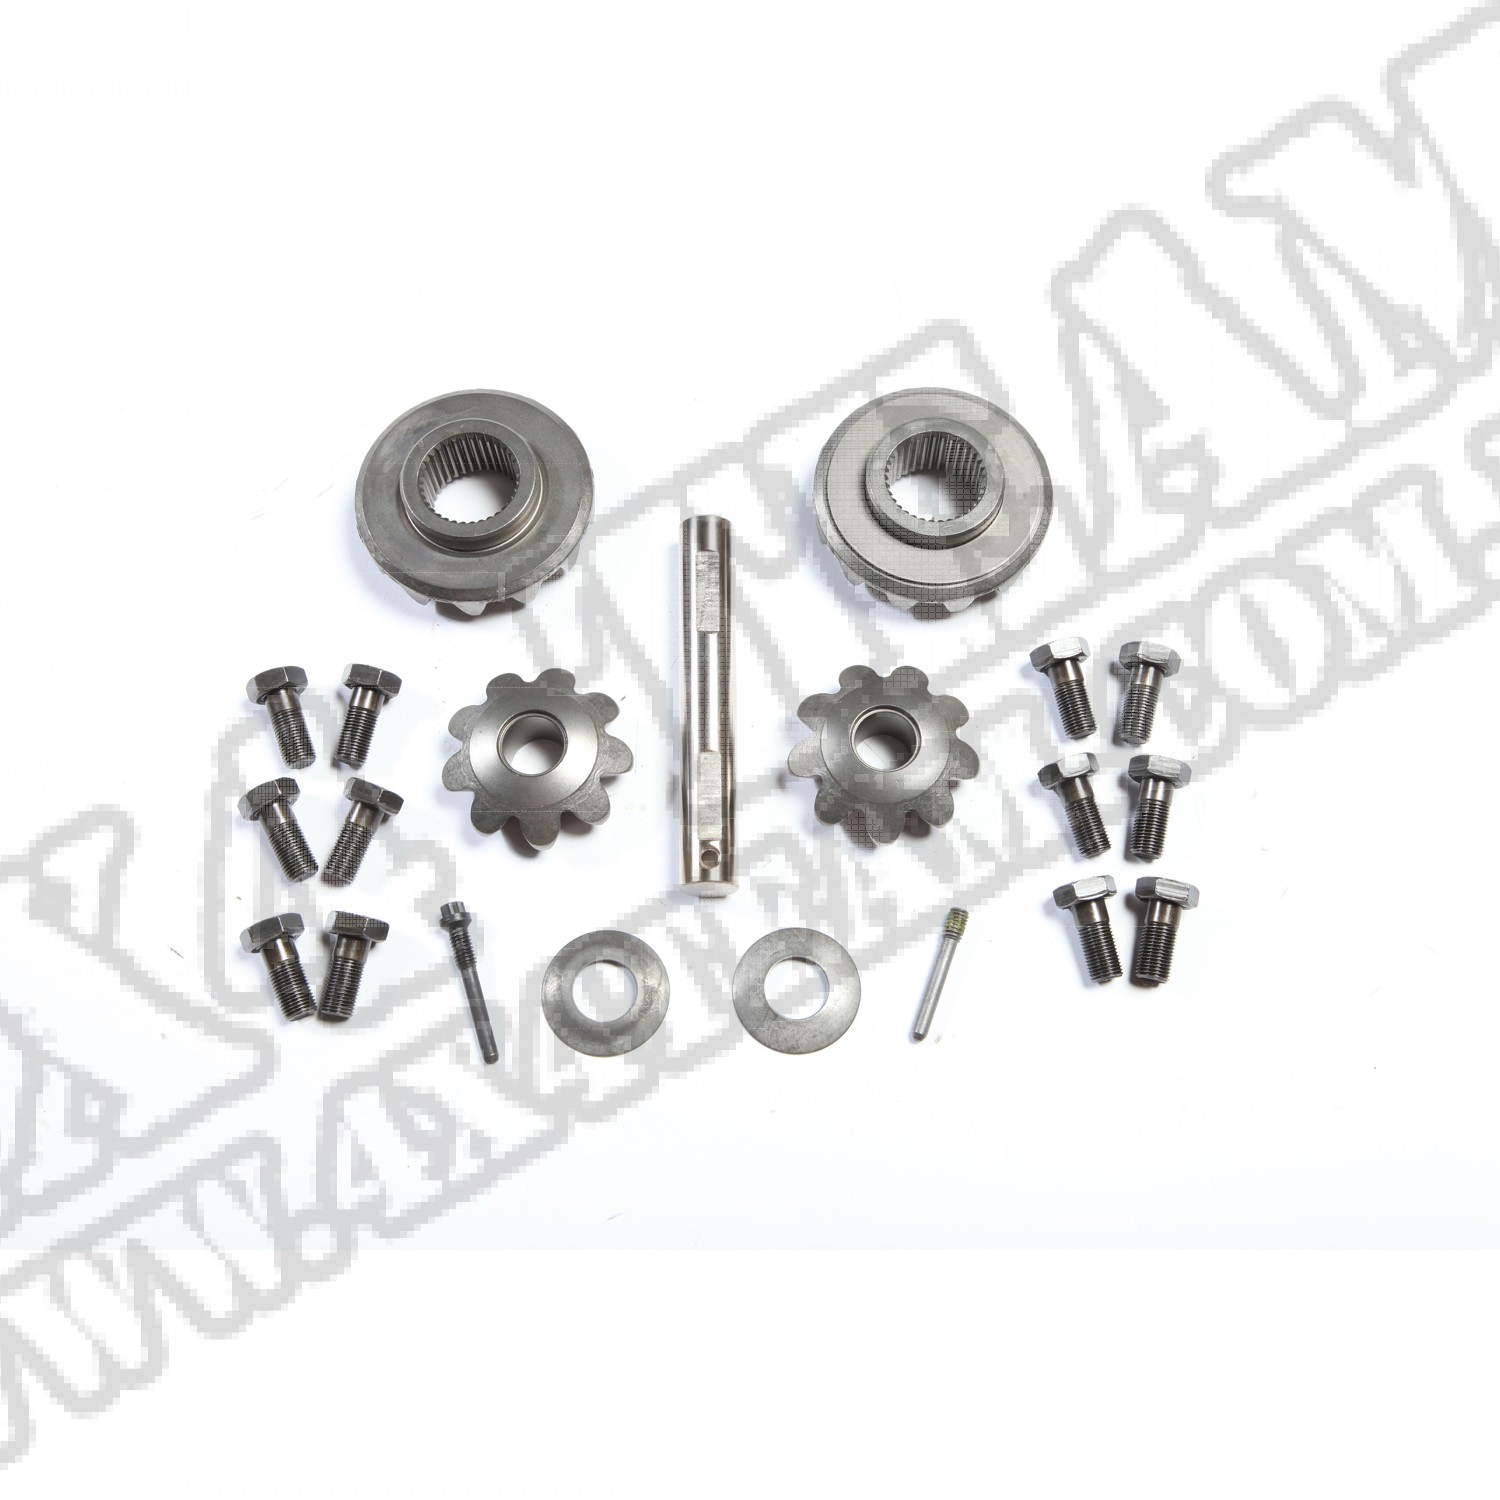 35 Spline Spider Gear, for Dana 60